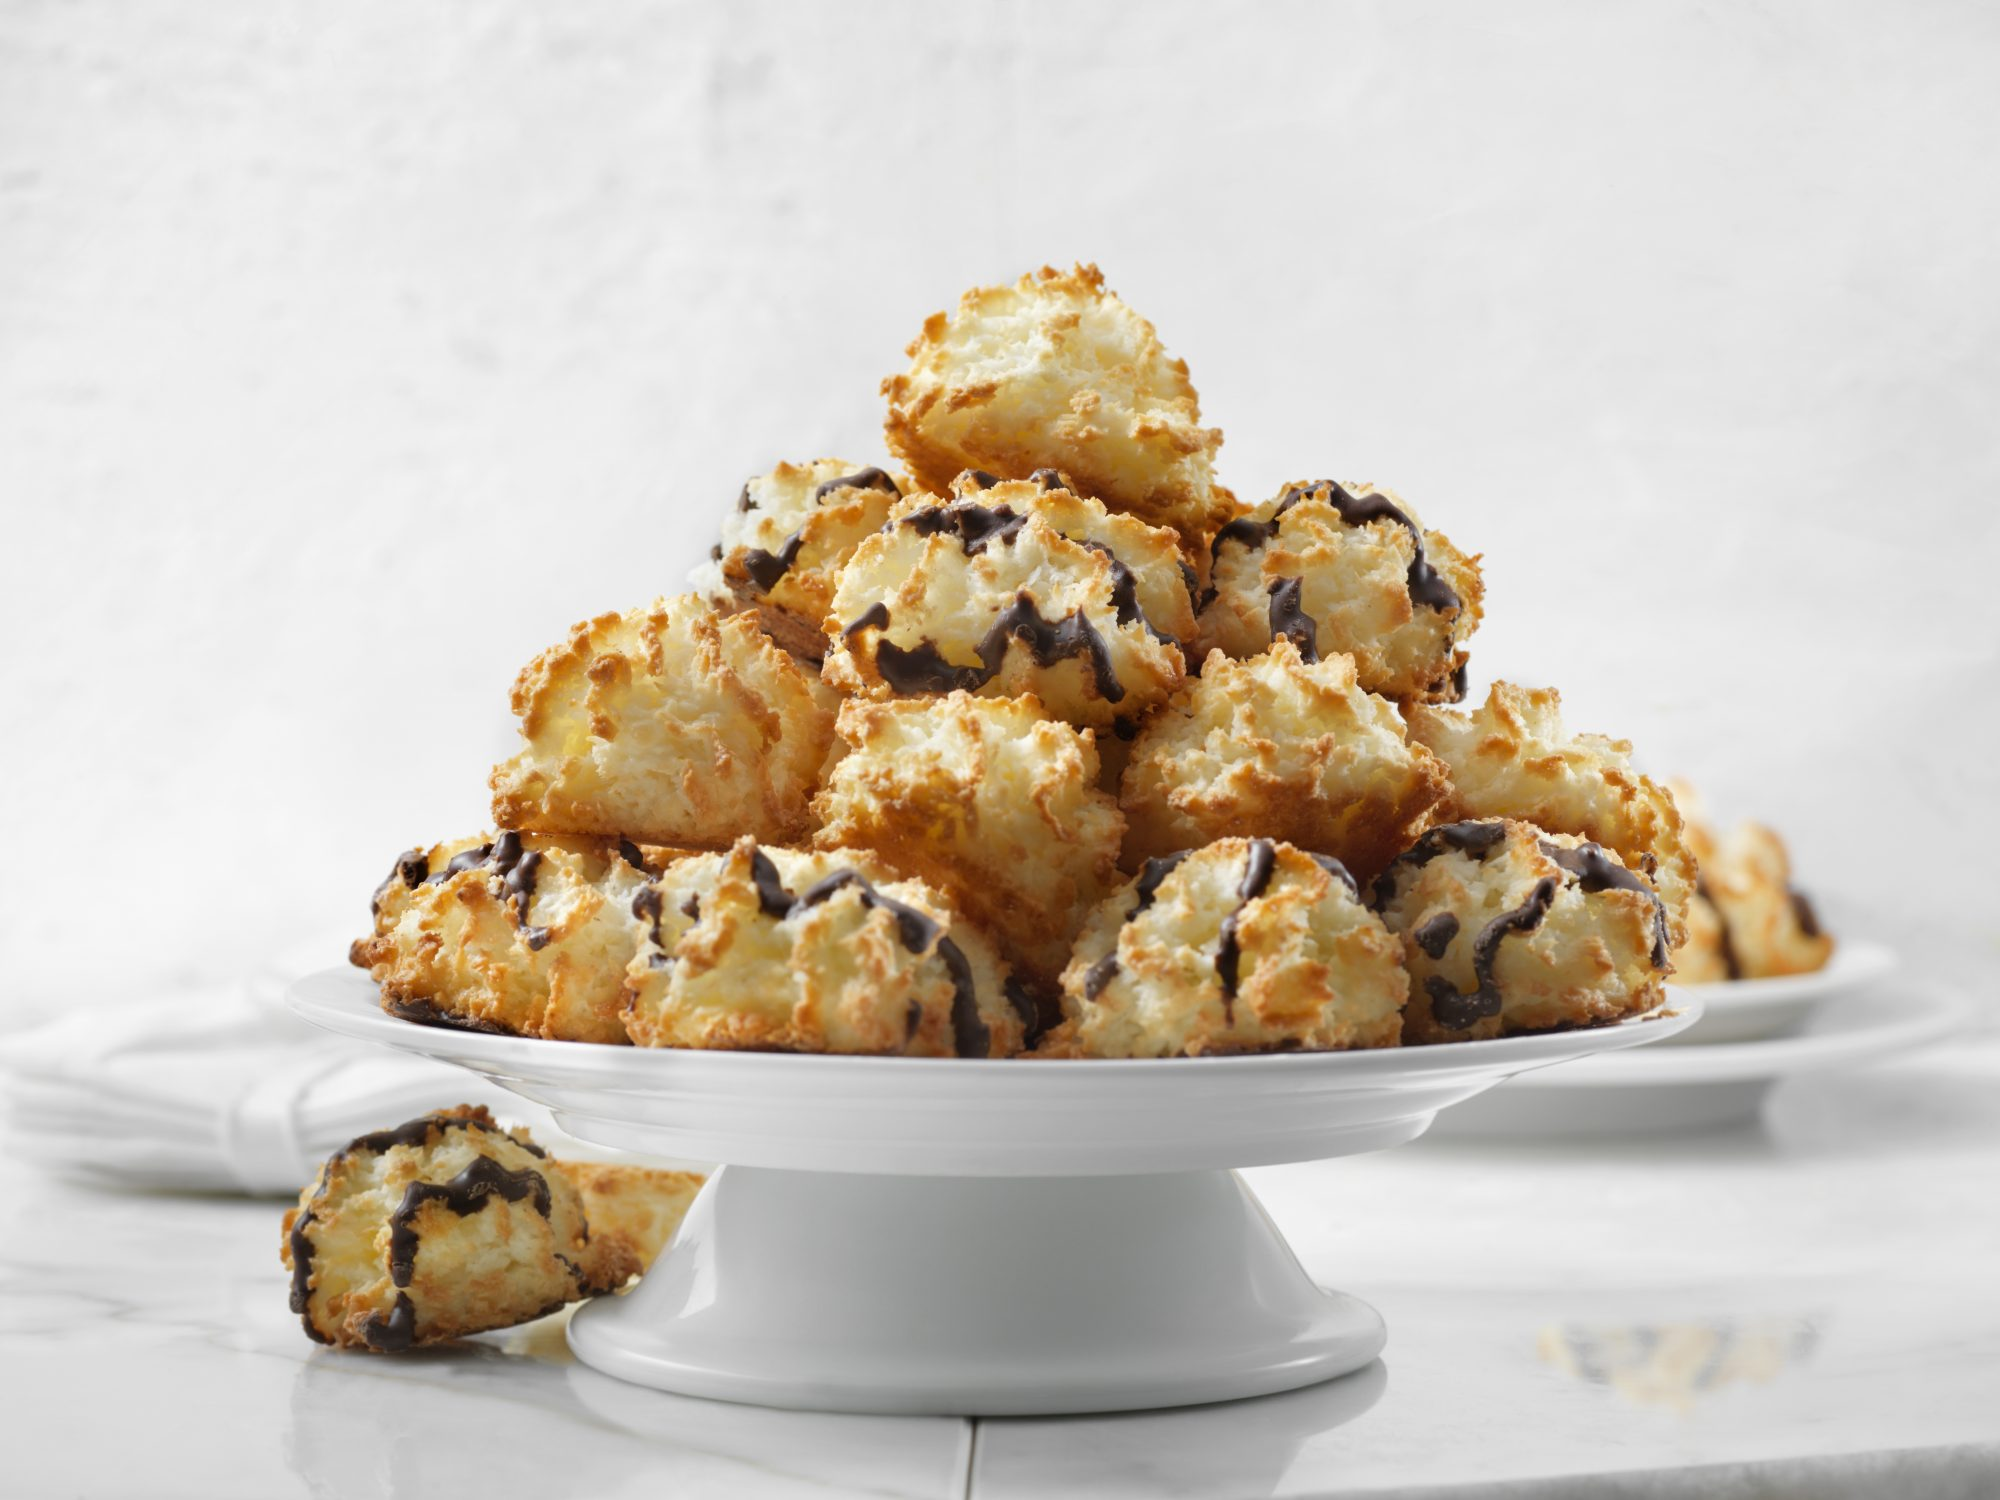 chocolate-drizzled coconut macaroons on a platter